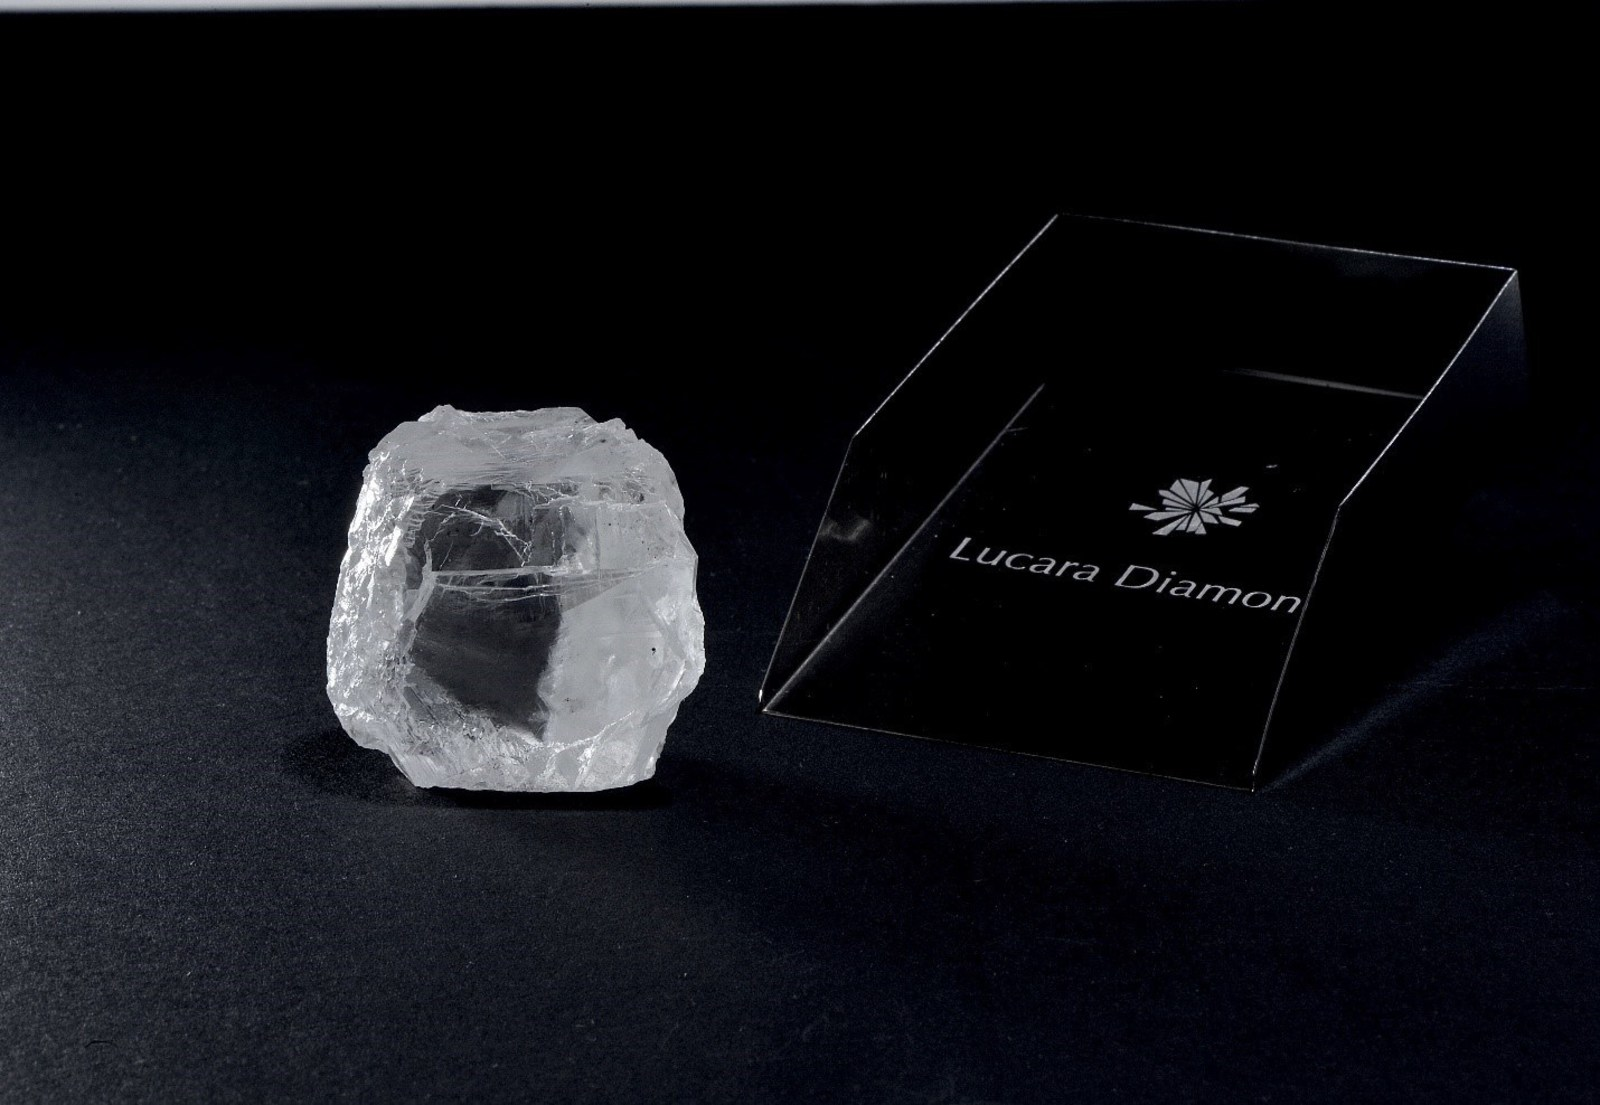 The 240 carat diamond recovered from the Karowe mine